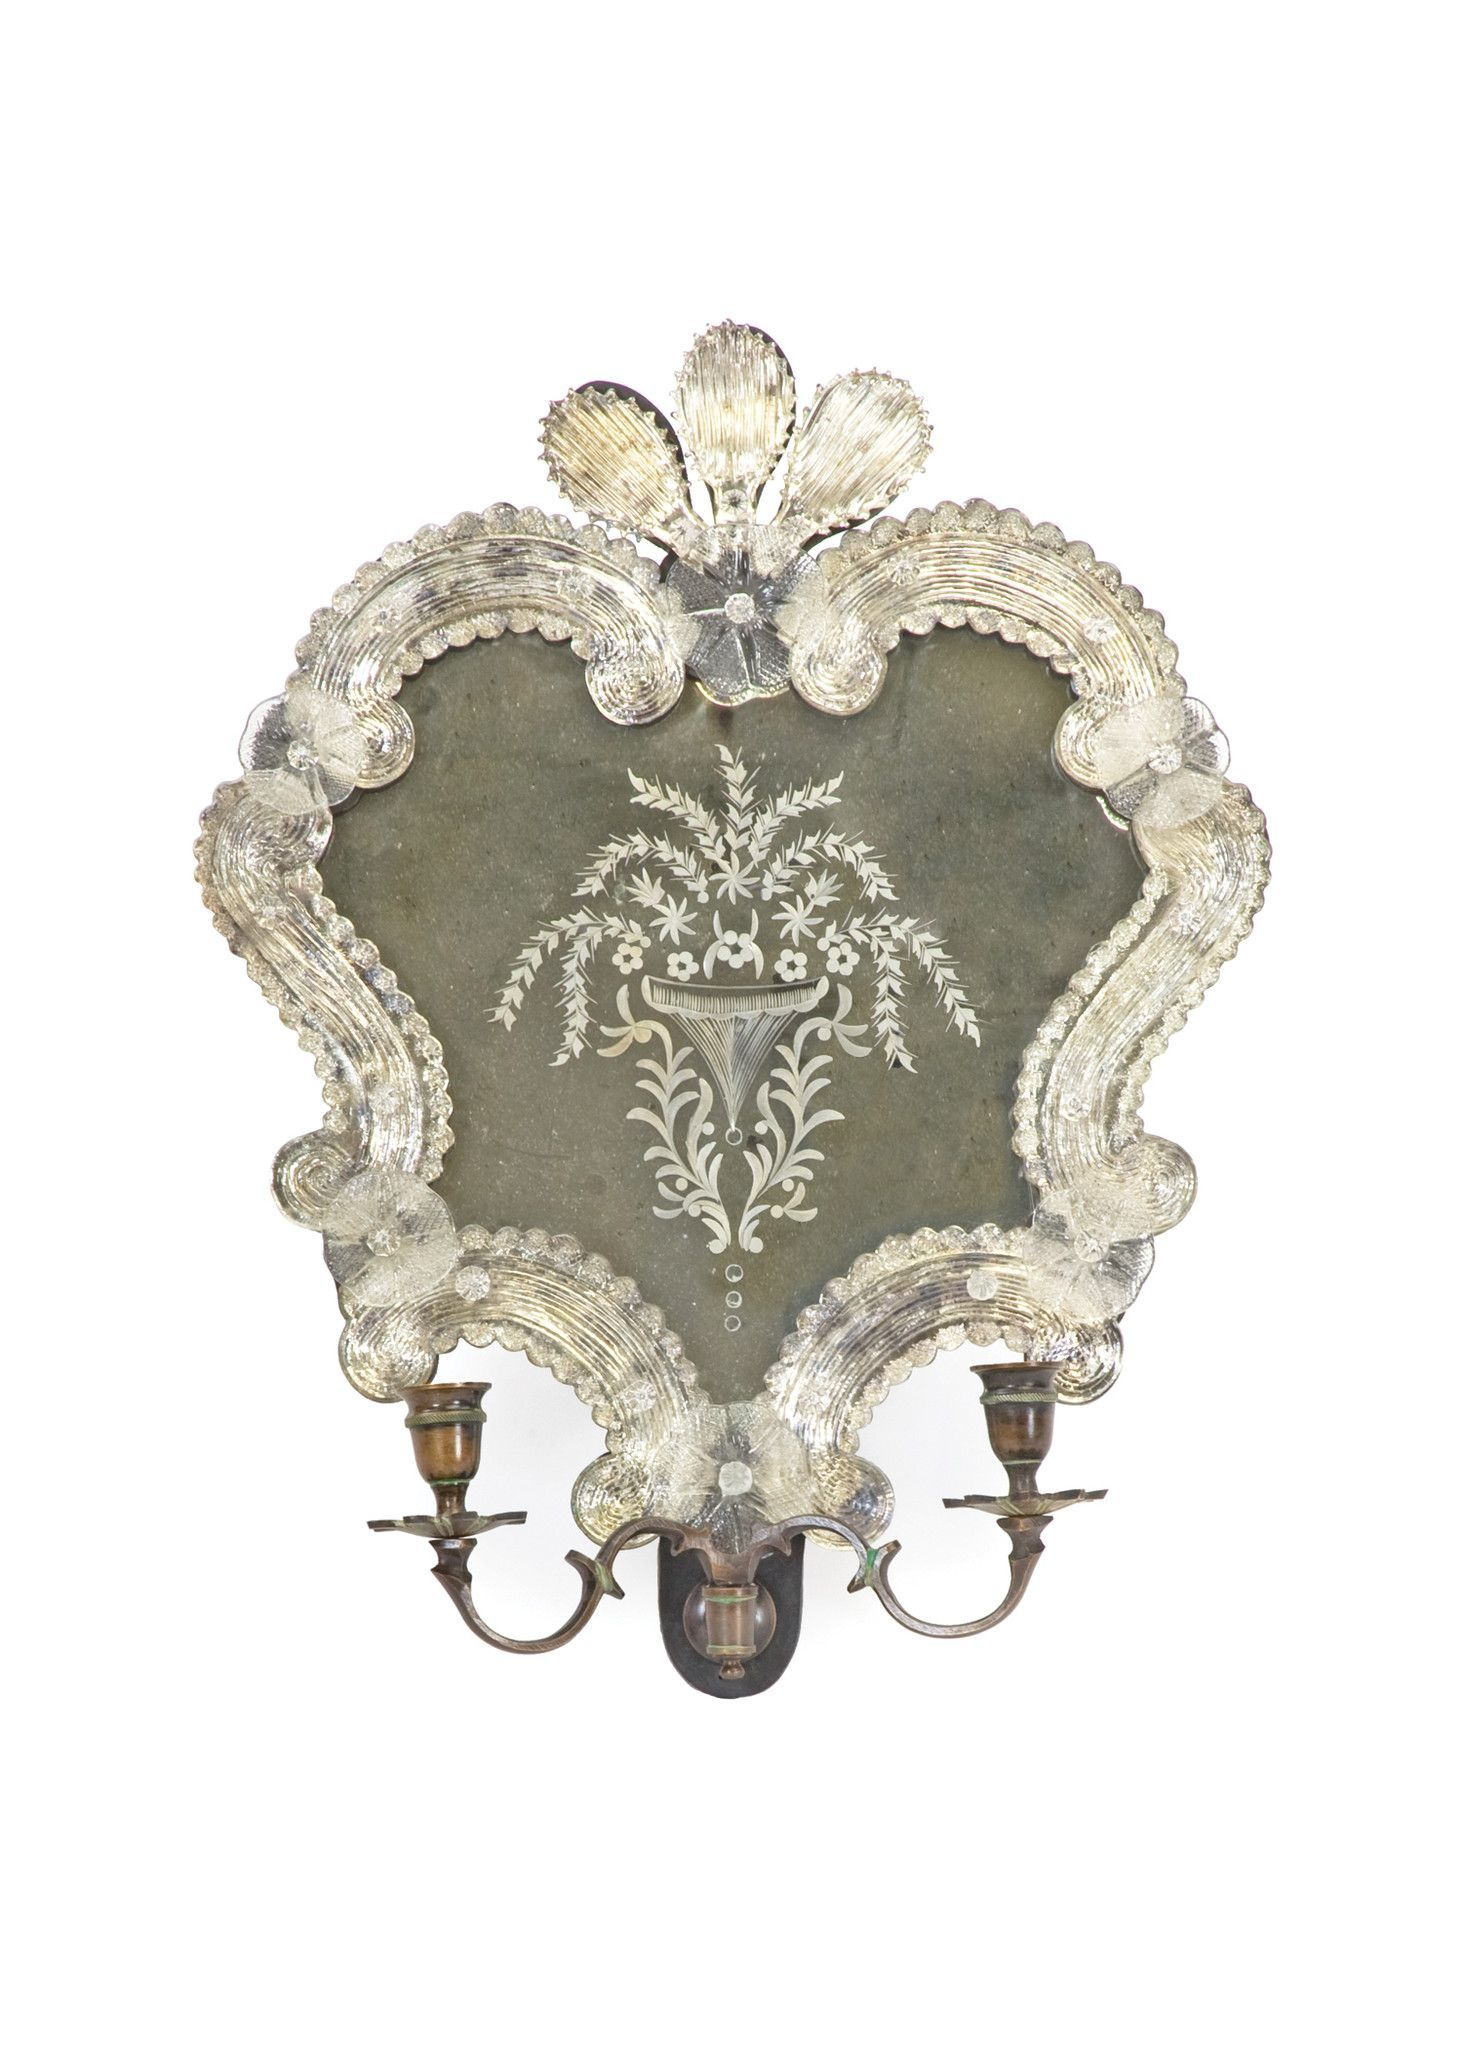 Bella Candle Sconce in Antique Brass and Glass